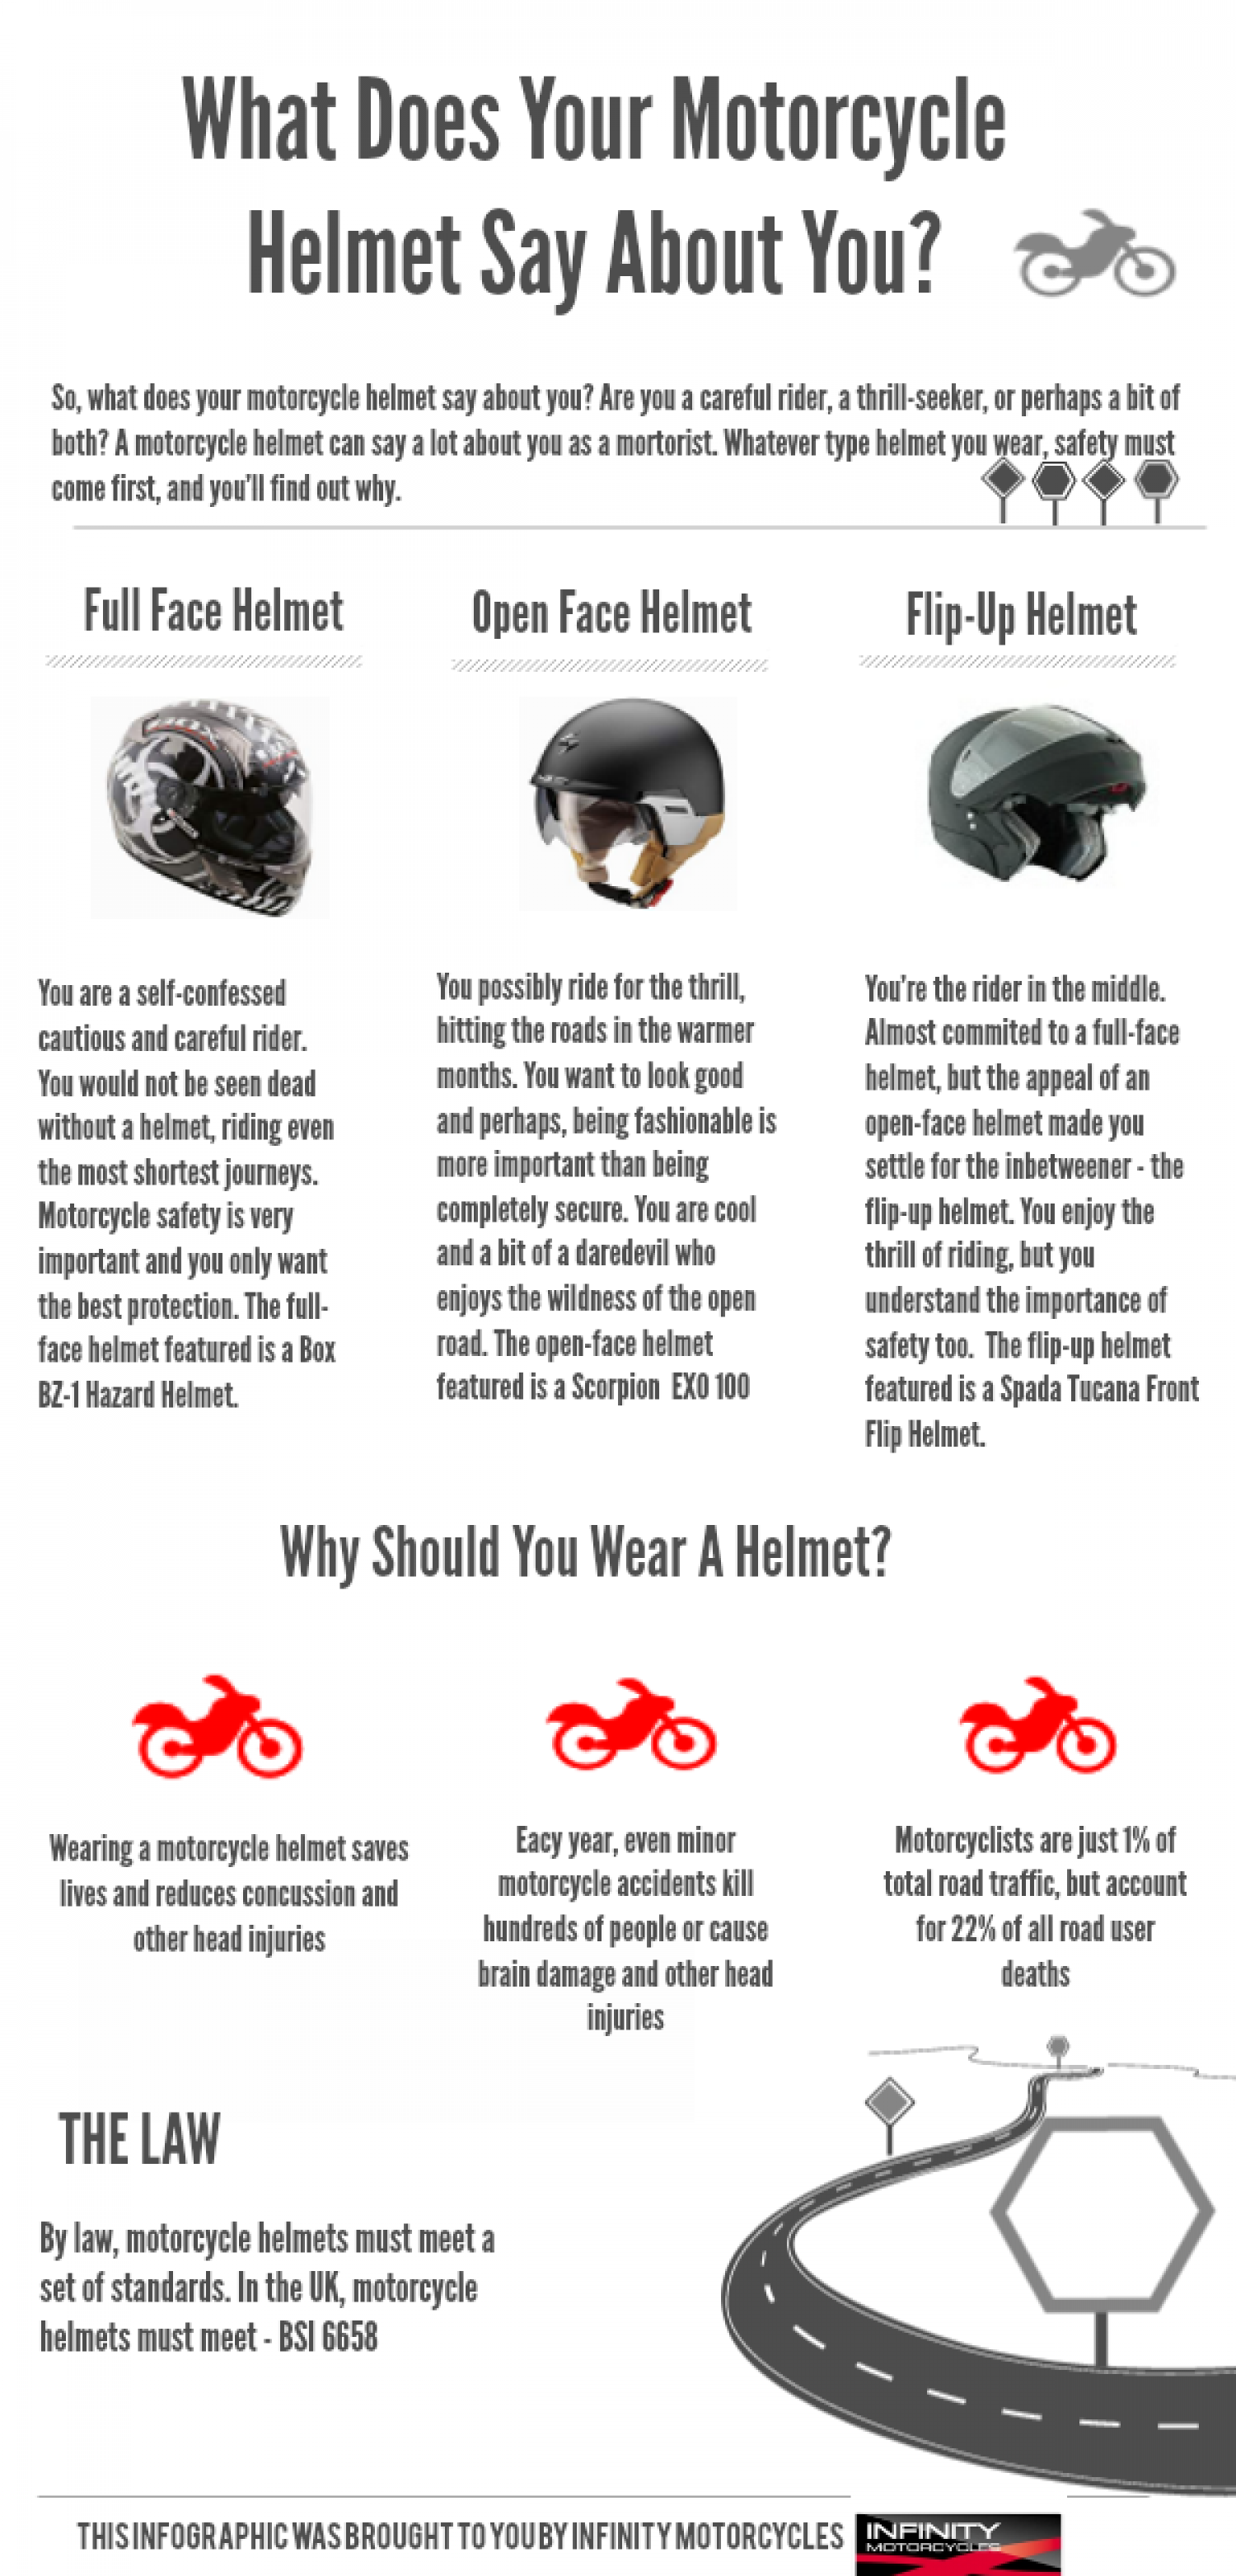 What Does Your Motorcycle Helmet Say About You? Infographic